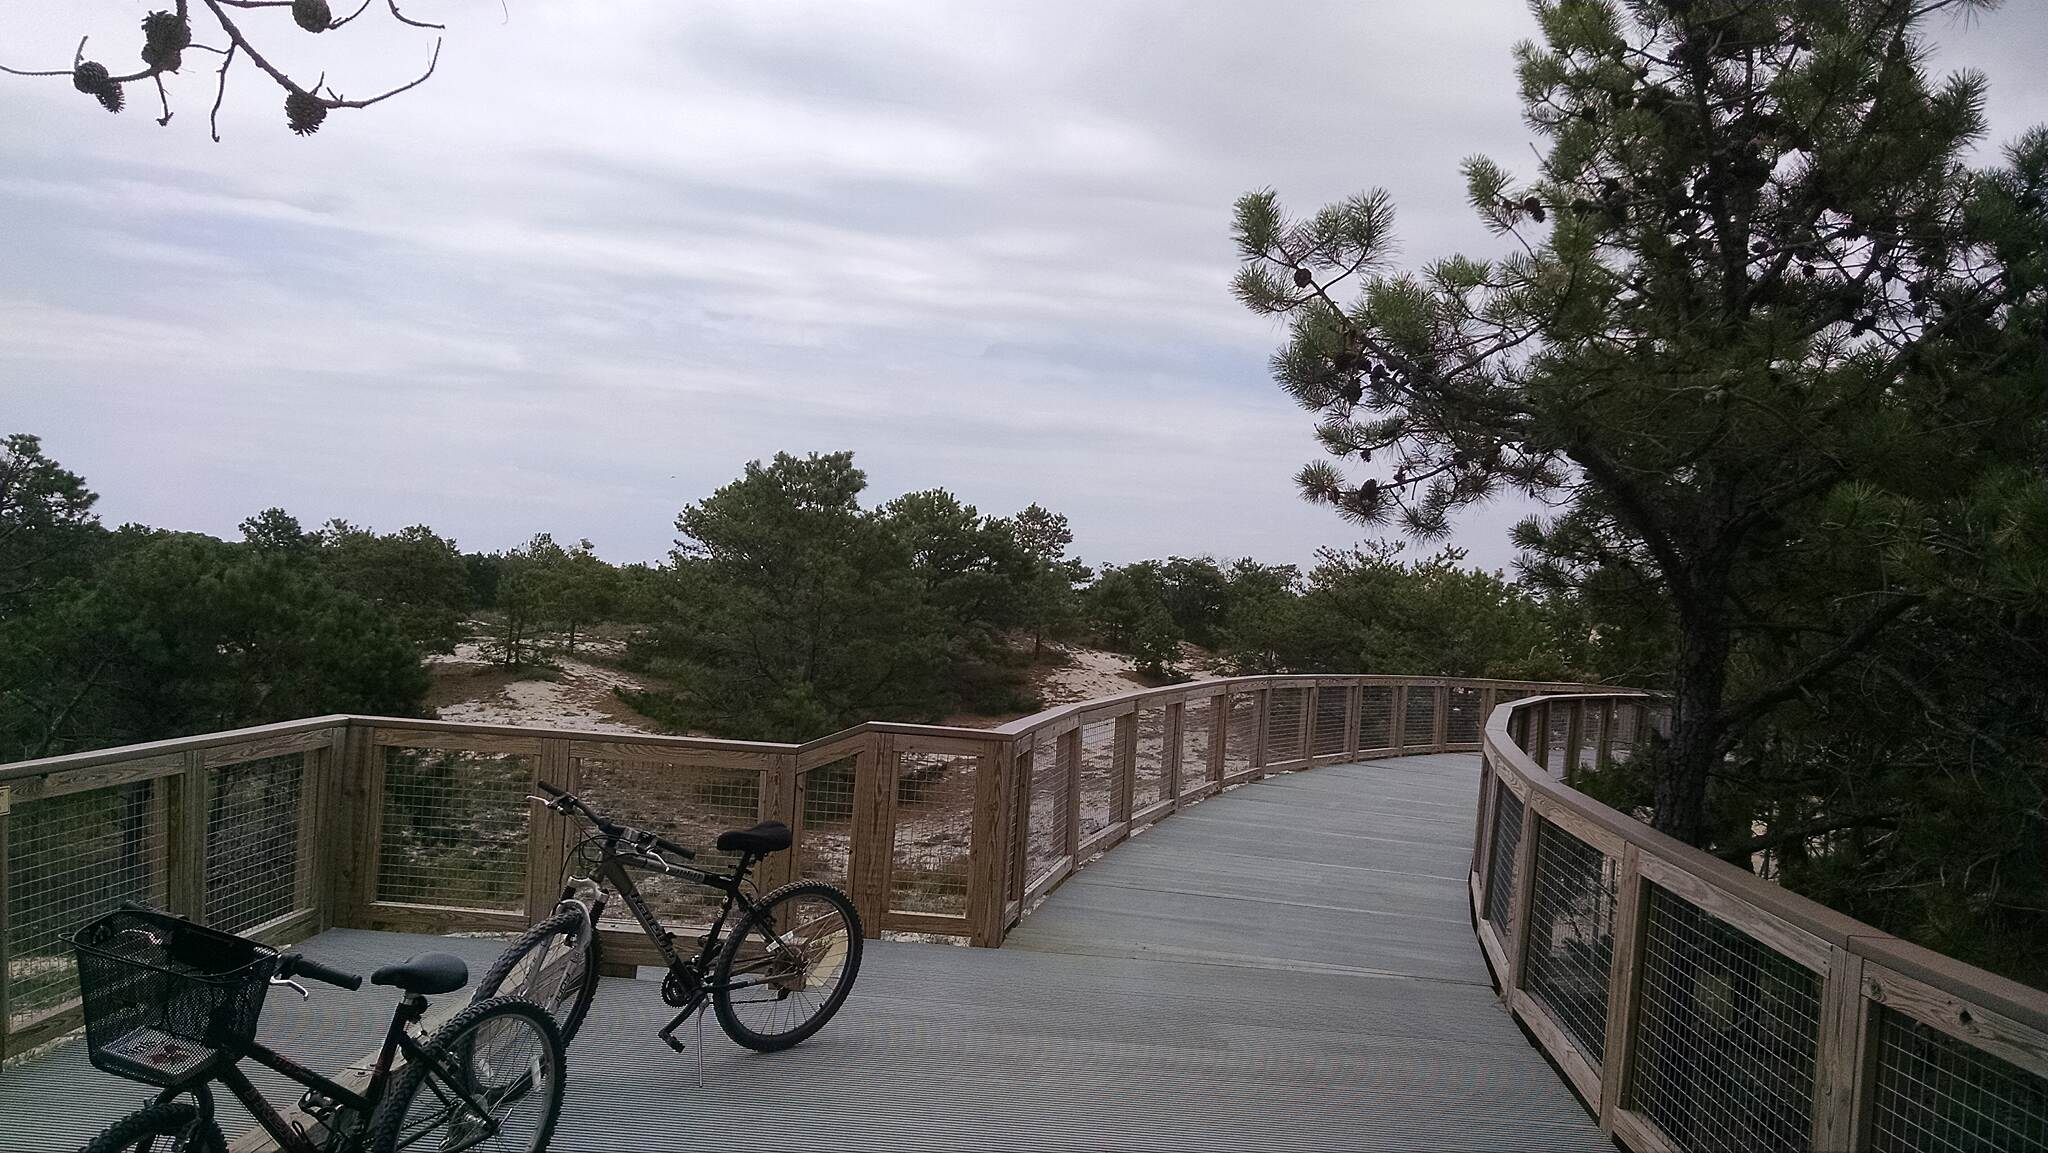 Gordons Pond Trail North end boardwalk Boardwalk over the dunes near Herring Point parking area.